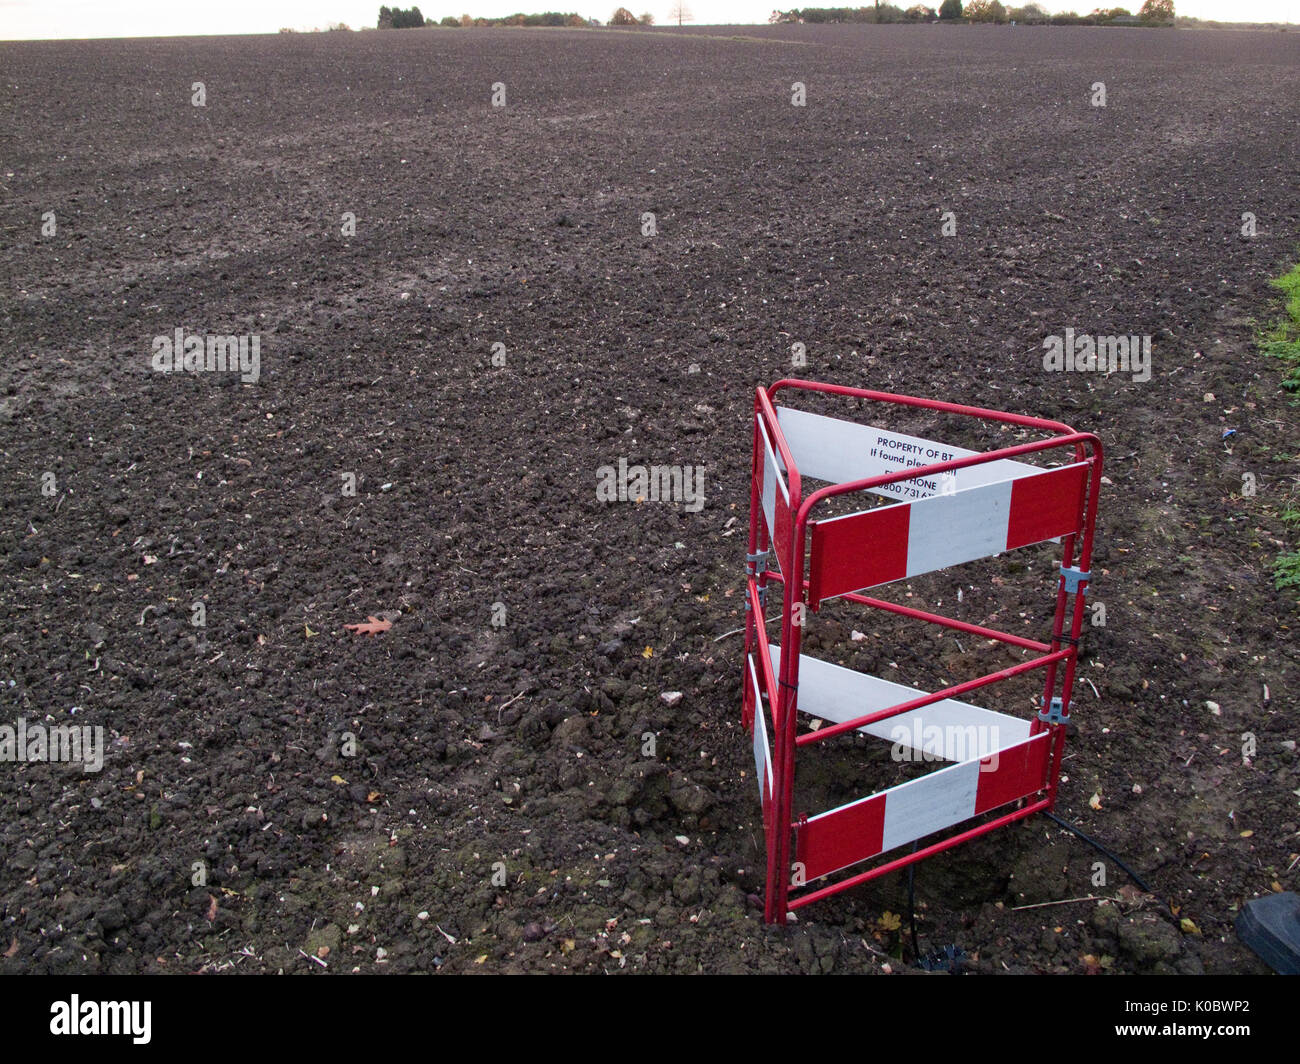 British Telecom hole in the ground by a freshly harrowed field - Stock Image